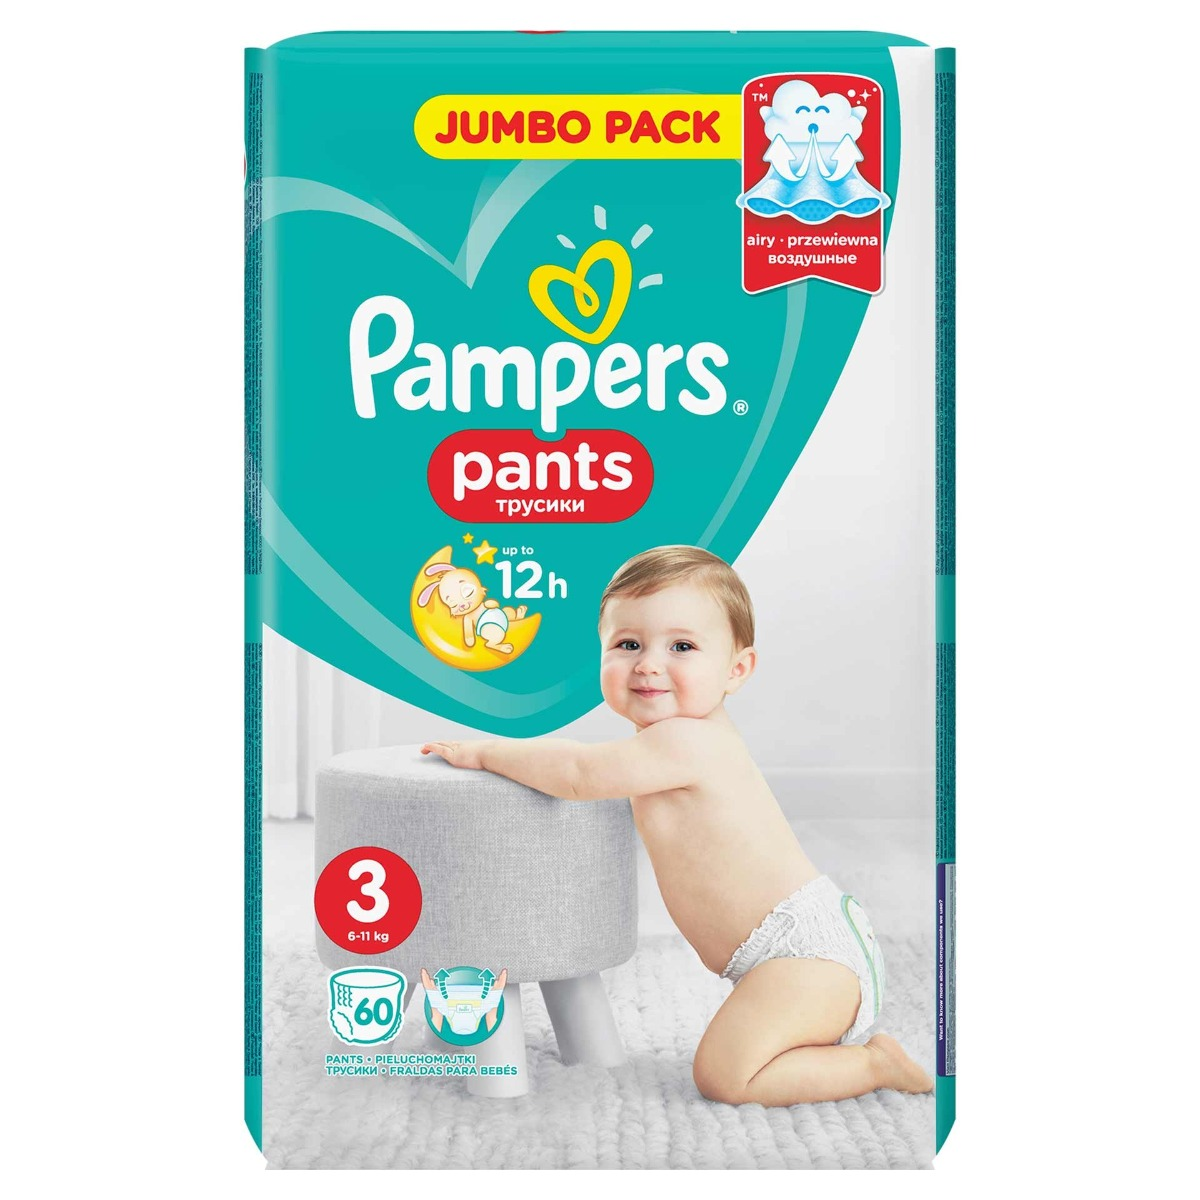 Scutece Pampers Jumbo Pack Pants Active Baby, Marimea 3, 6 - 11 Kg, 60 Buc